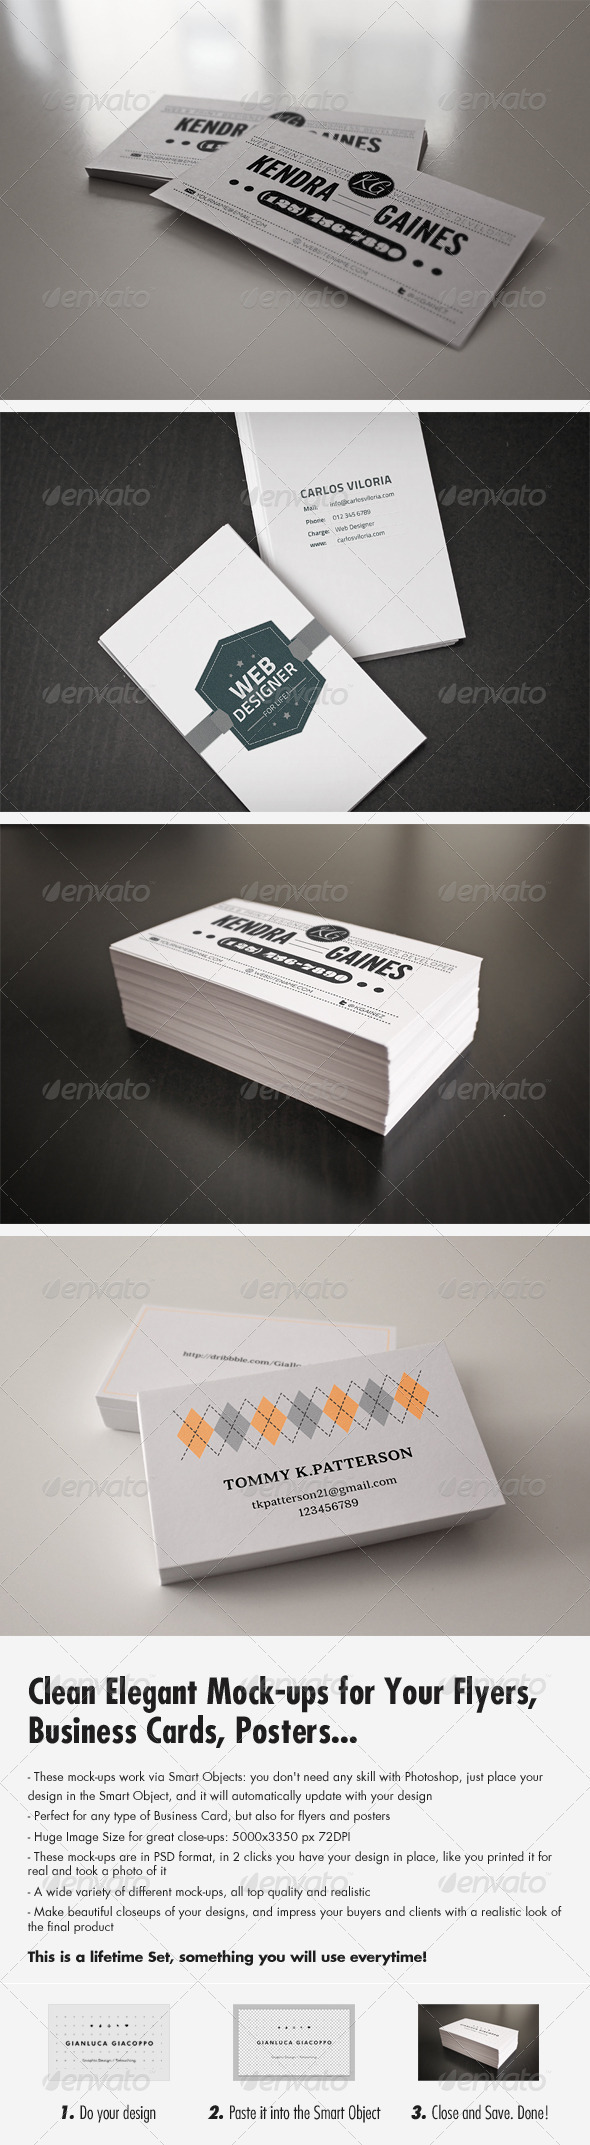 Flyer / Business Card Clean Realistic Mock-Up Set 1 - Business Cards Print